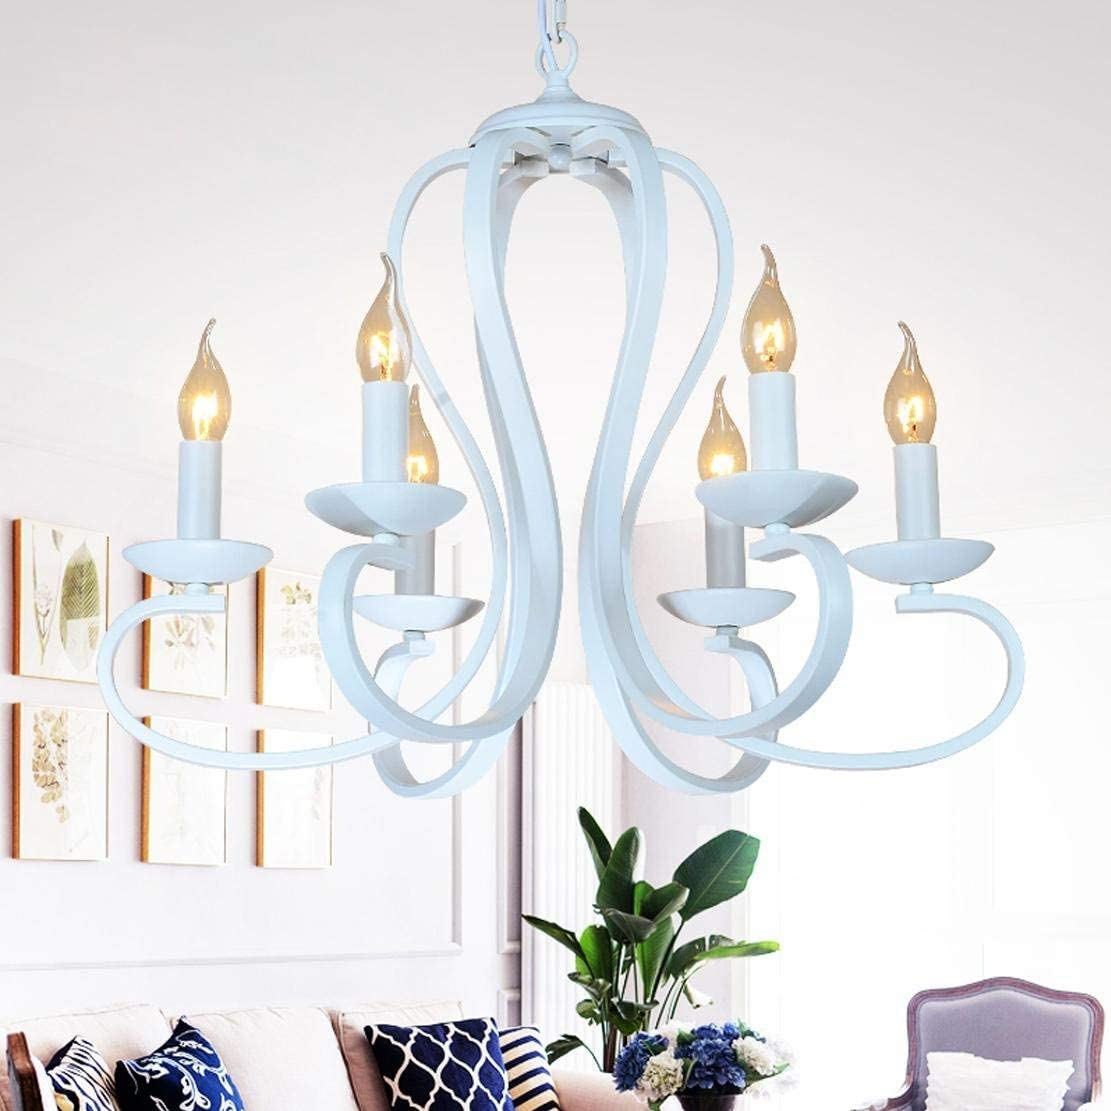 BOSSLV Design Fashion Chandelier 6X E14 Iron Elbow Candle Hanging Light Creative Personality Pendent Lamp Led Decorative Pendant Lamp for Dining Table Bed Room Dining Hall Bar 61 cm